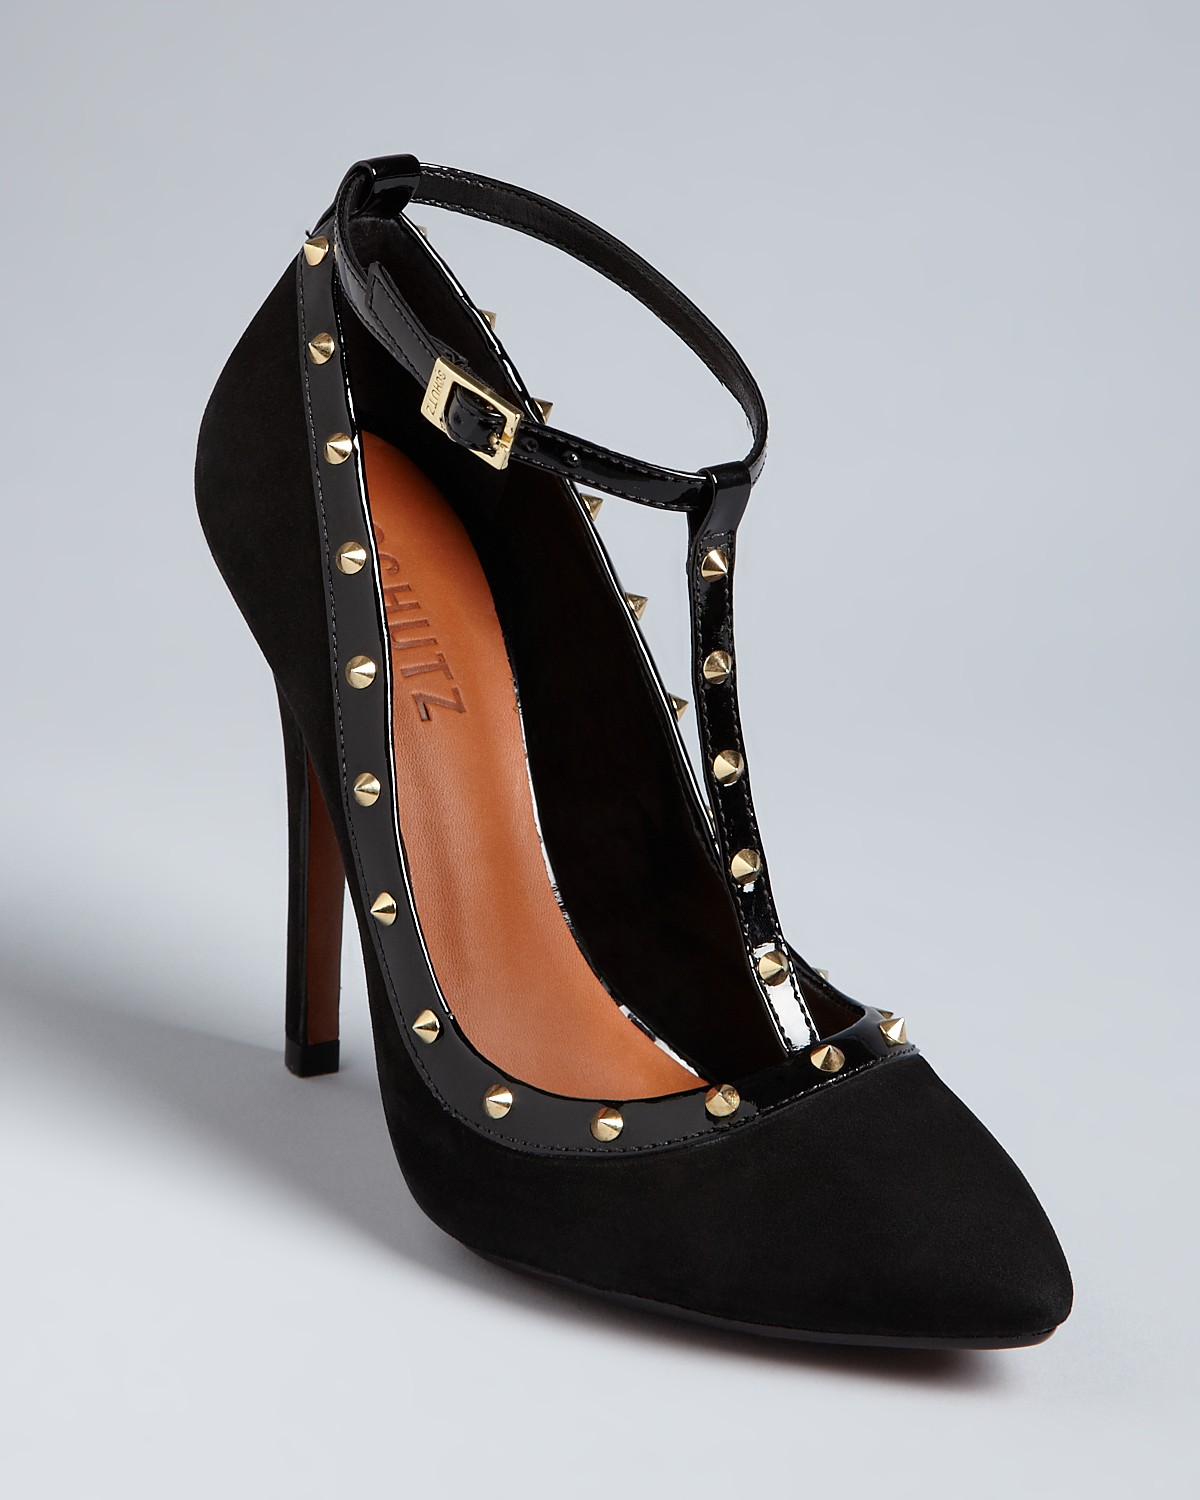 the studded pump...perfect holiday shoe